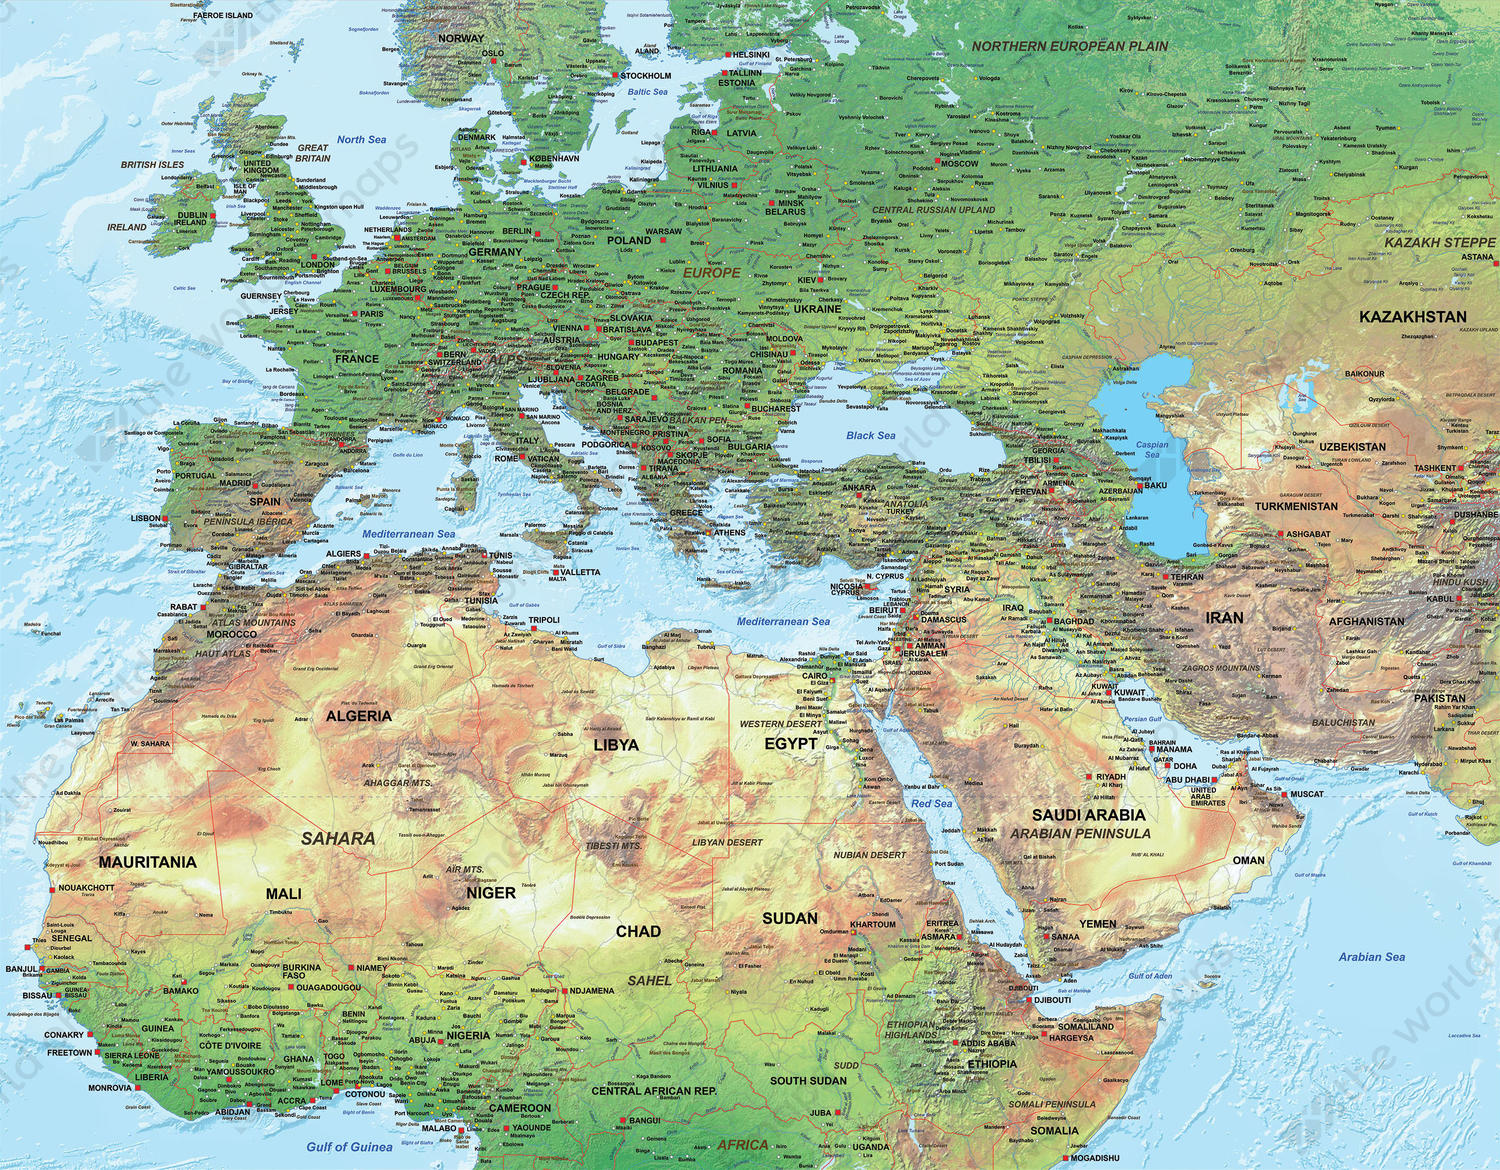 Middle East And North Africa Physical Map Physical Digital Map Europe North Africa Middle East 1316 | The